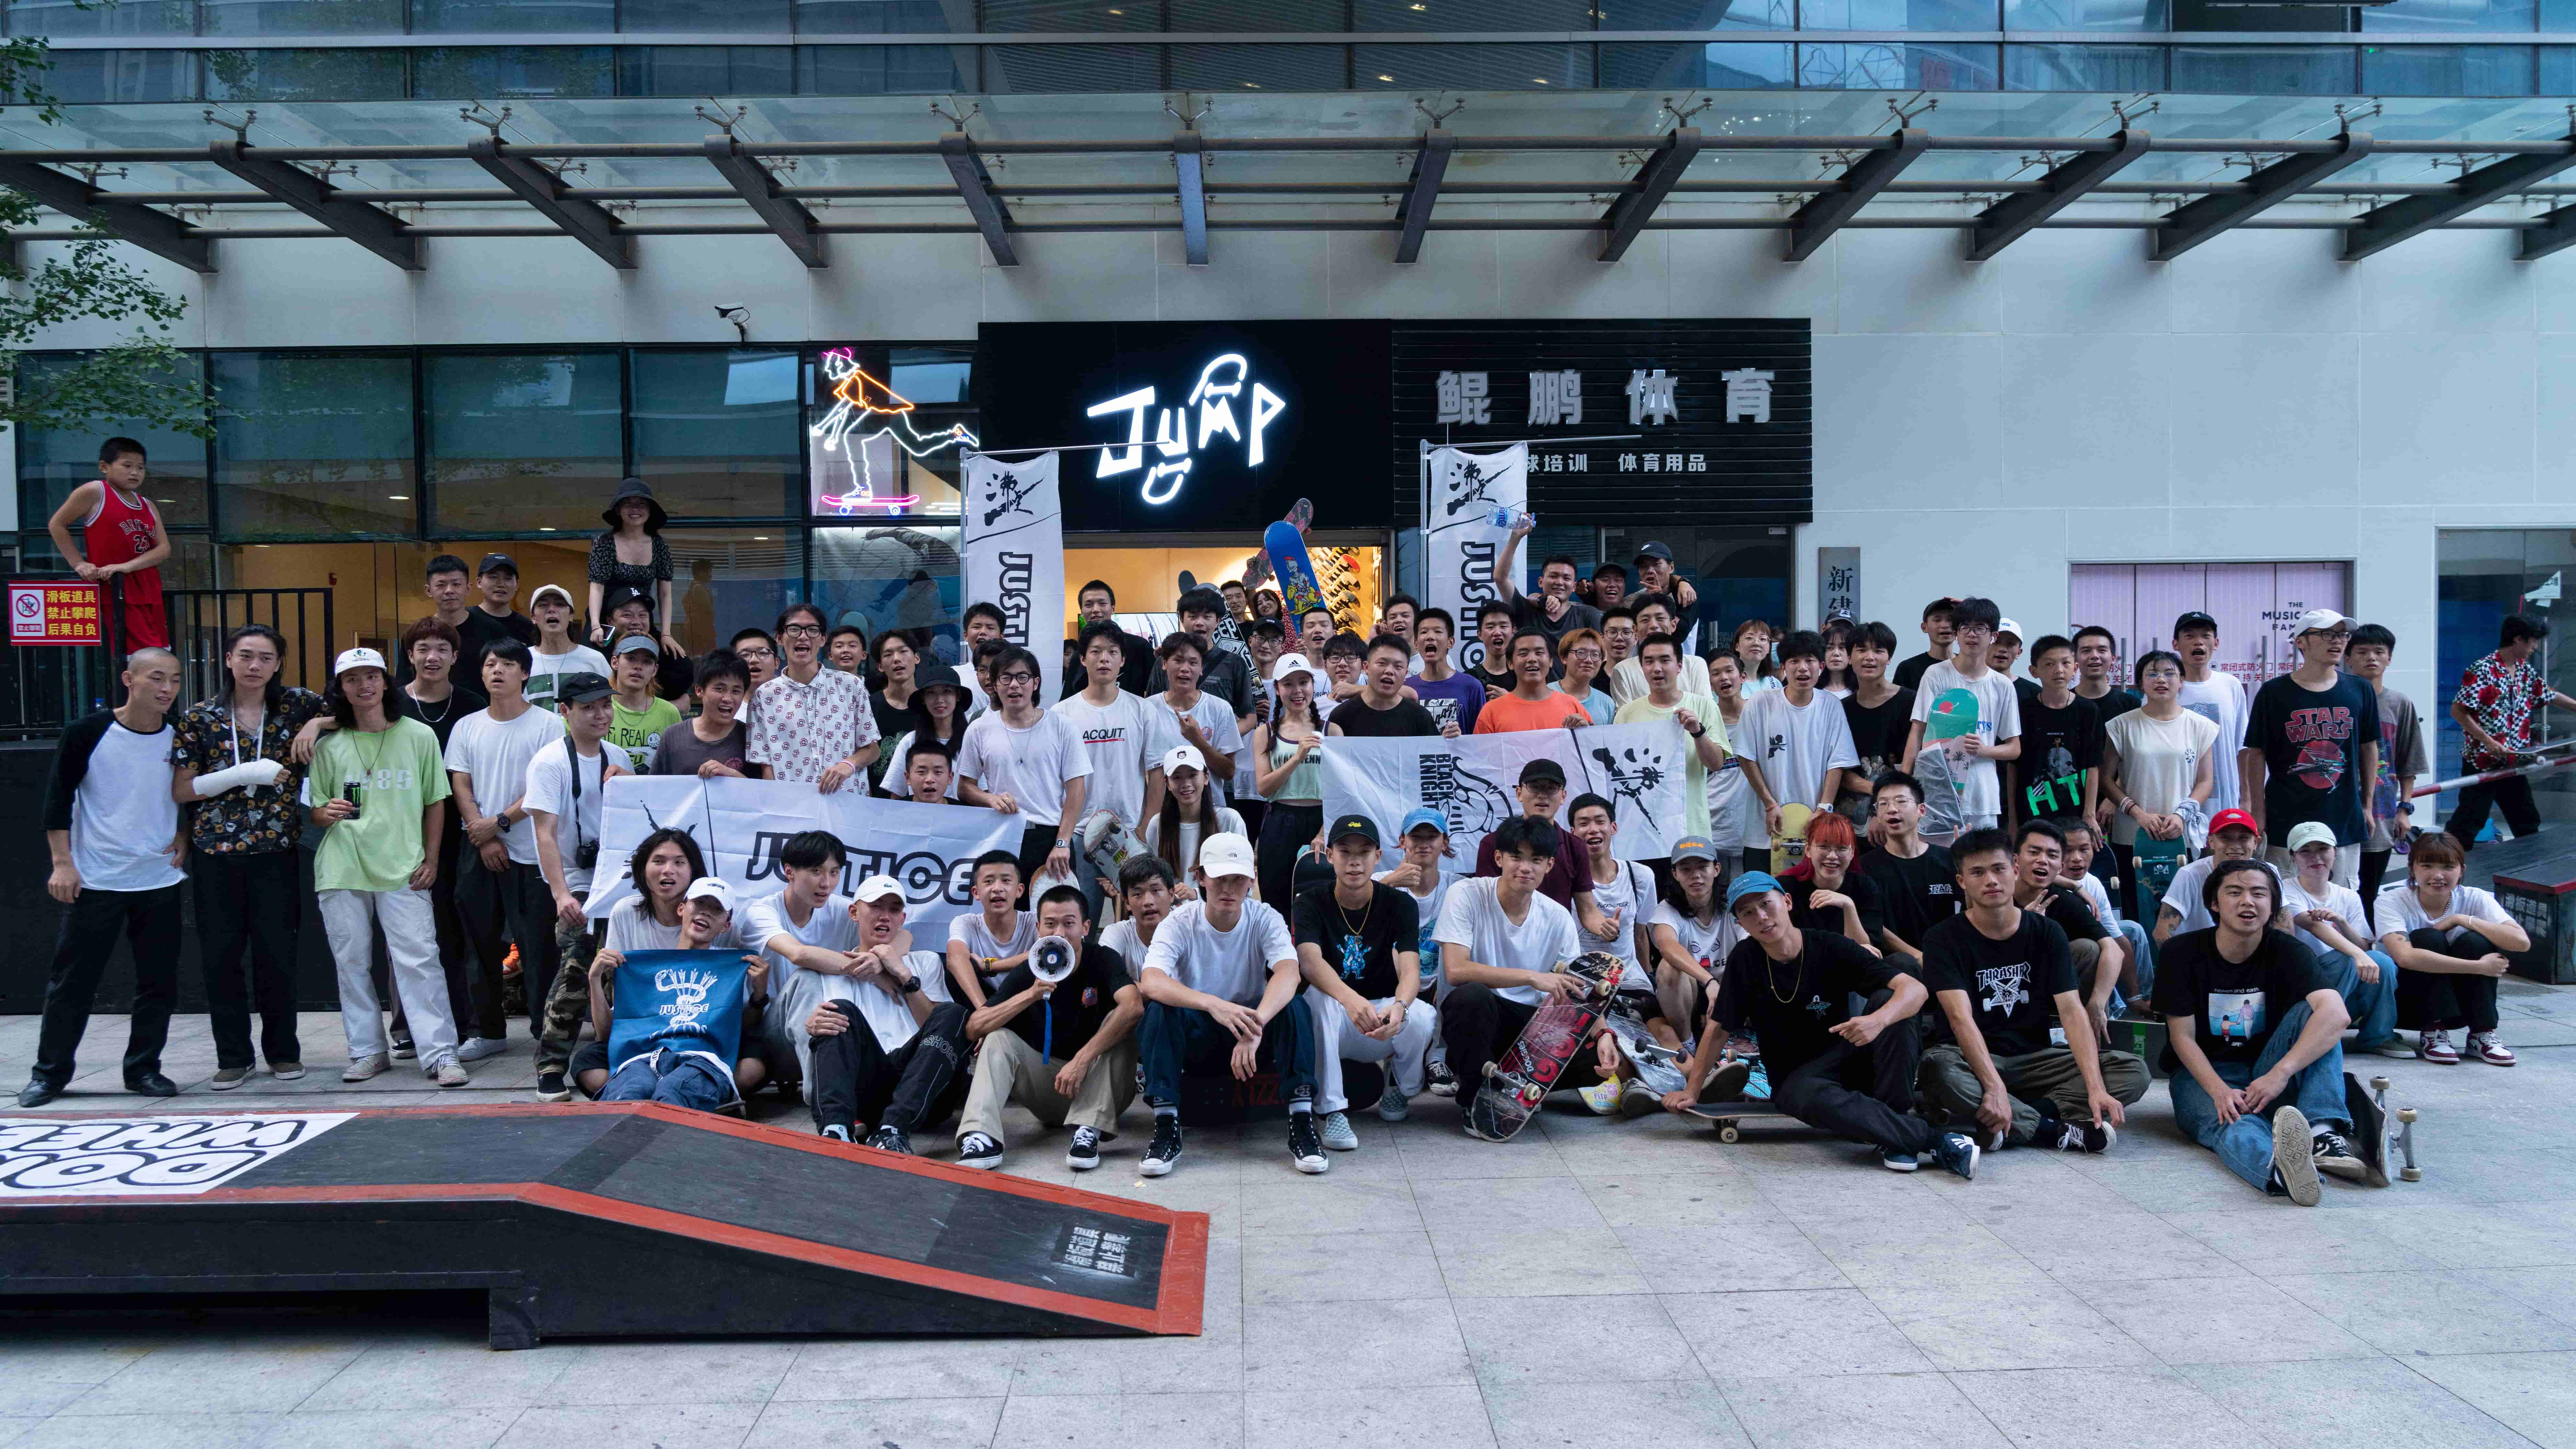 Skate and Brave | Black Knight X Jump skate shop Collabration!(图7)